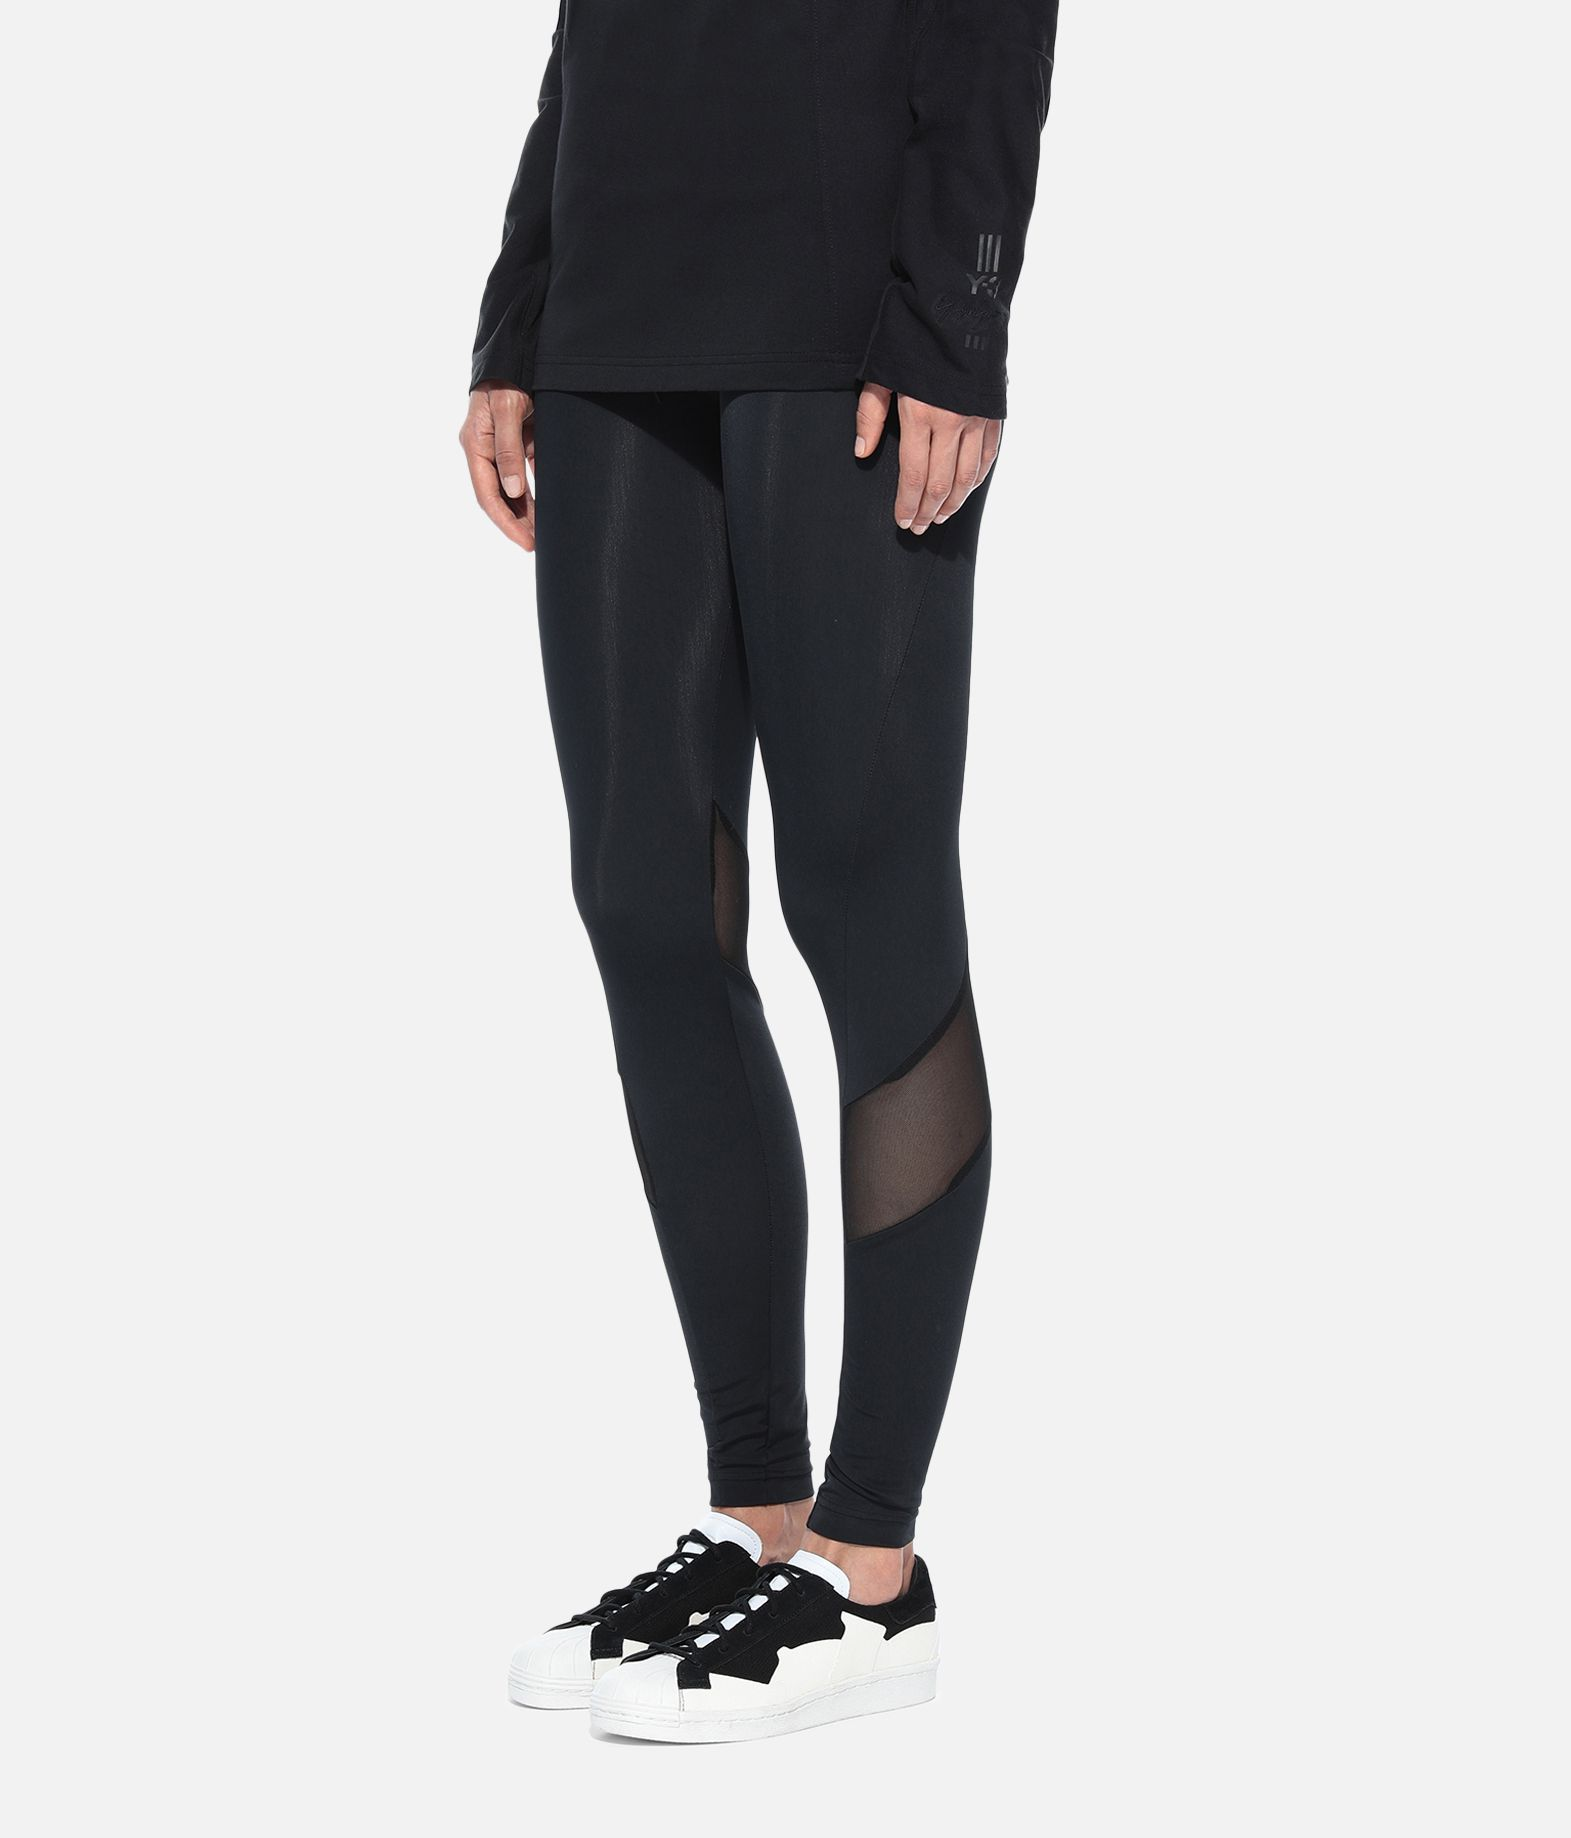 Y-3 Y-3 New Classic Tights Leggings Woman e